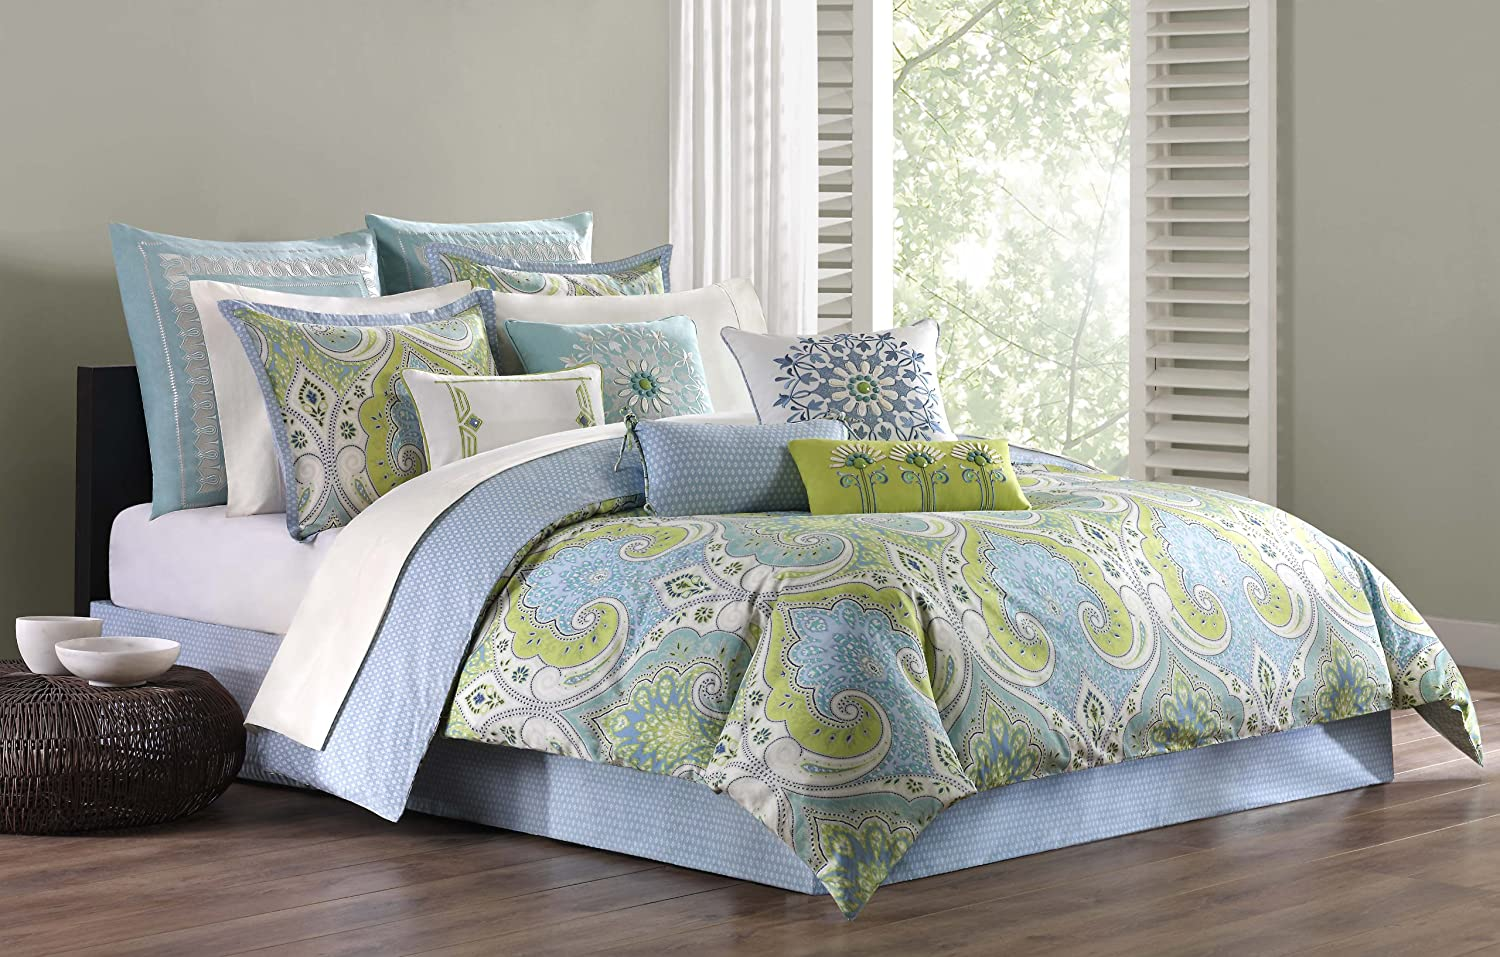 Echo Design Sardinia Duvet Cover King Size - Teal Green , Paisley Duvet Cover Set – 3 Piece – 100% Cotton Light Weight Bed Comforter Covers